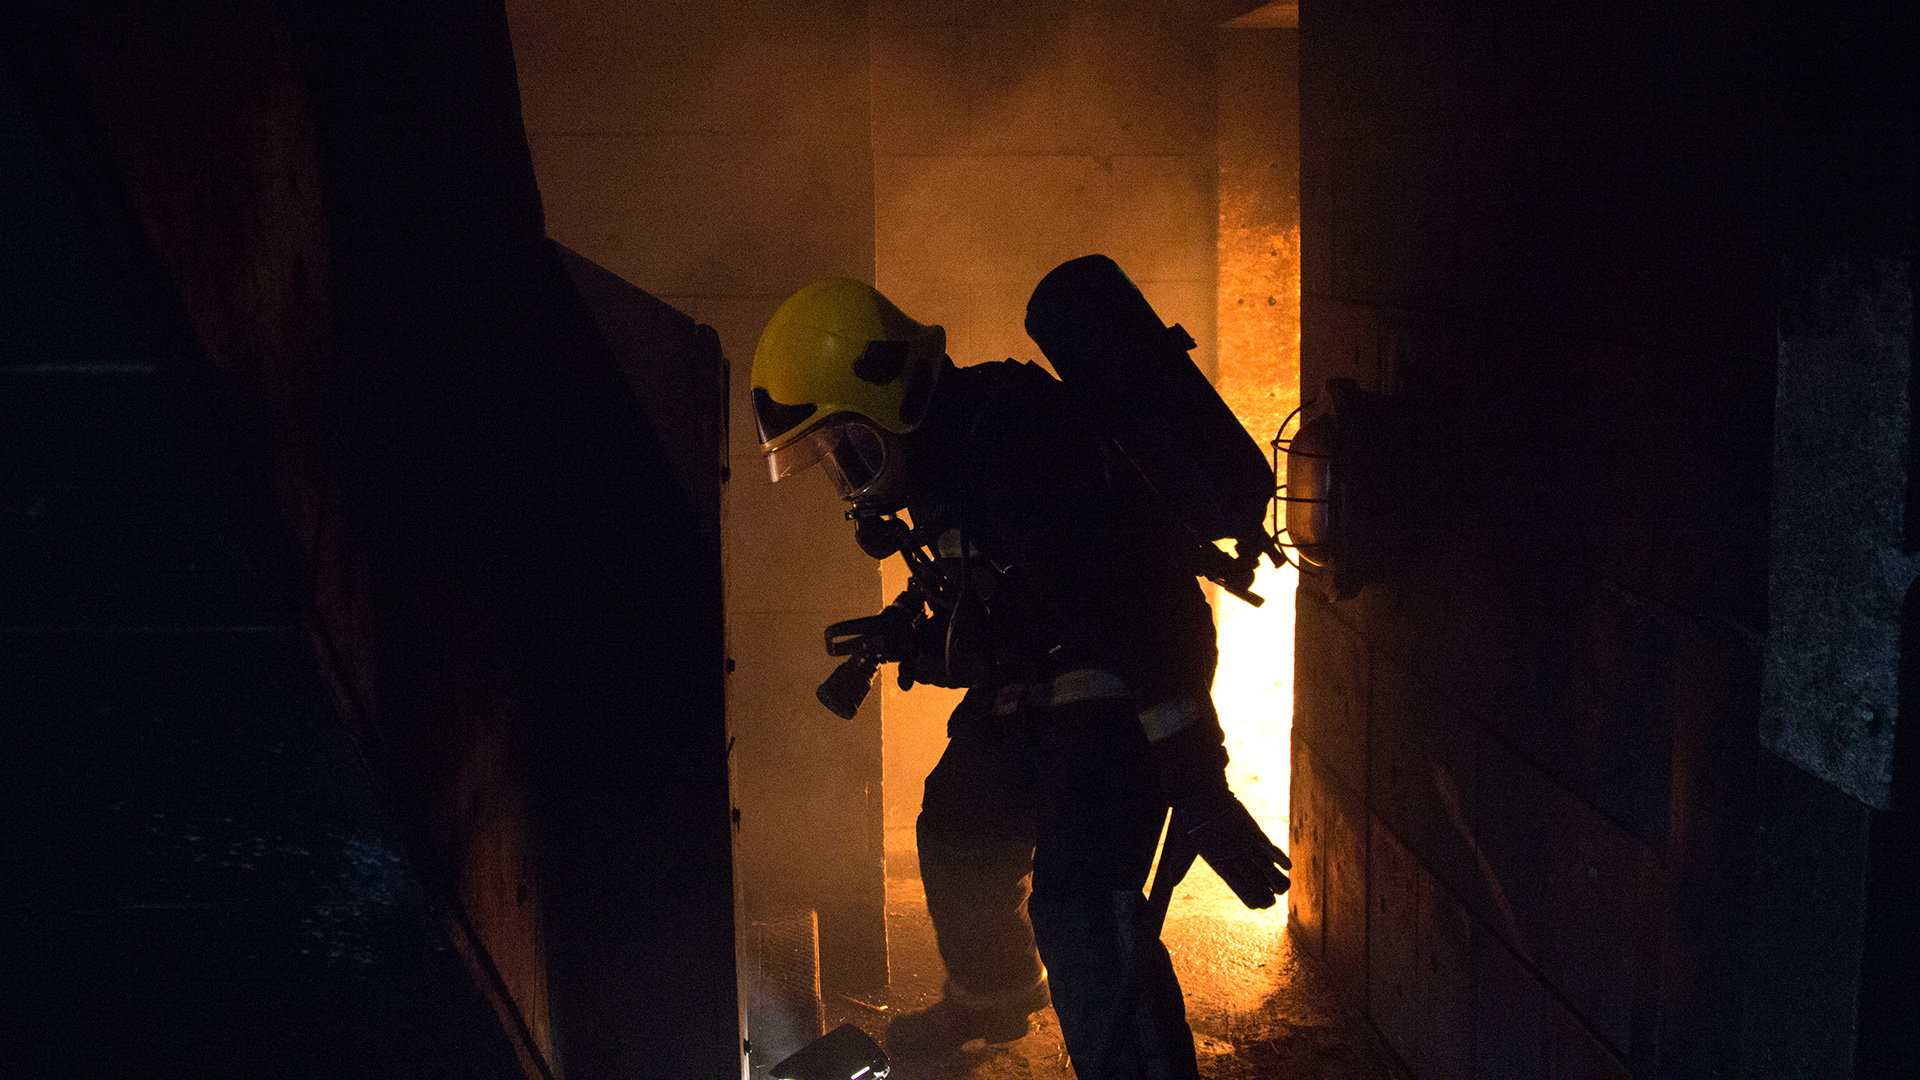 A firefighter walking towards a staircase with flames behind